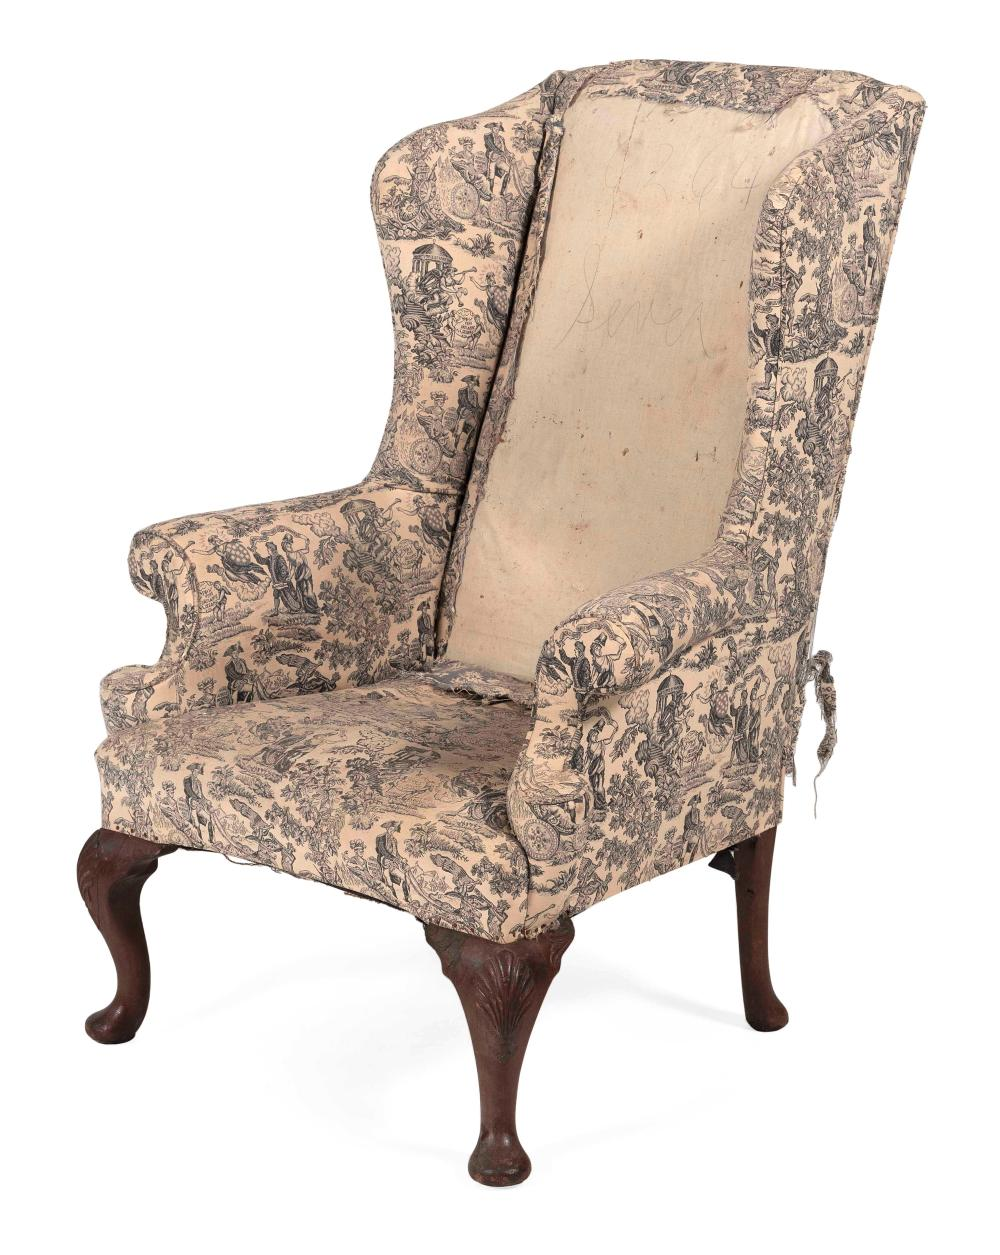 """ENGLISH GEORGE II WING CHAIR 18th Century Back height 47.5"""". Seat height 17""""."""